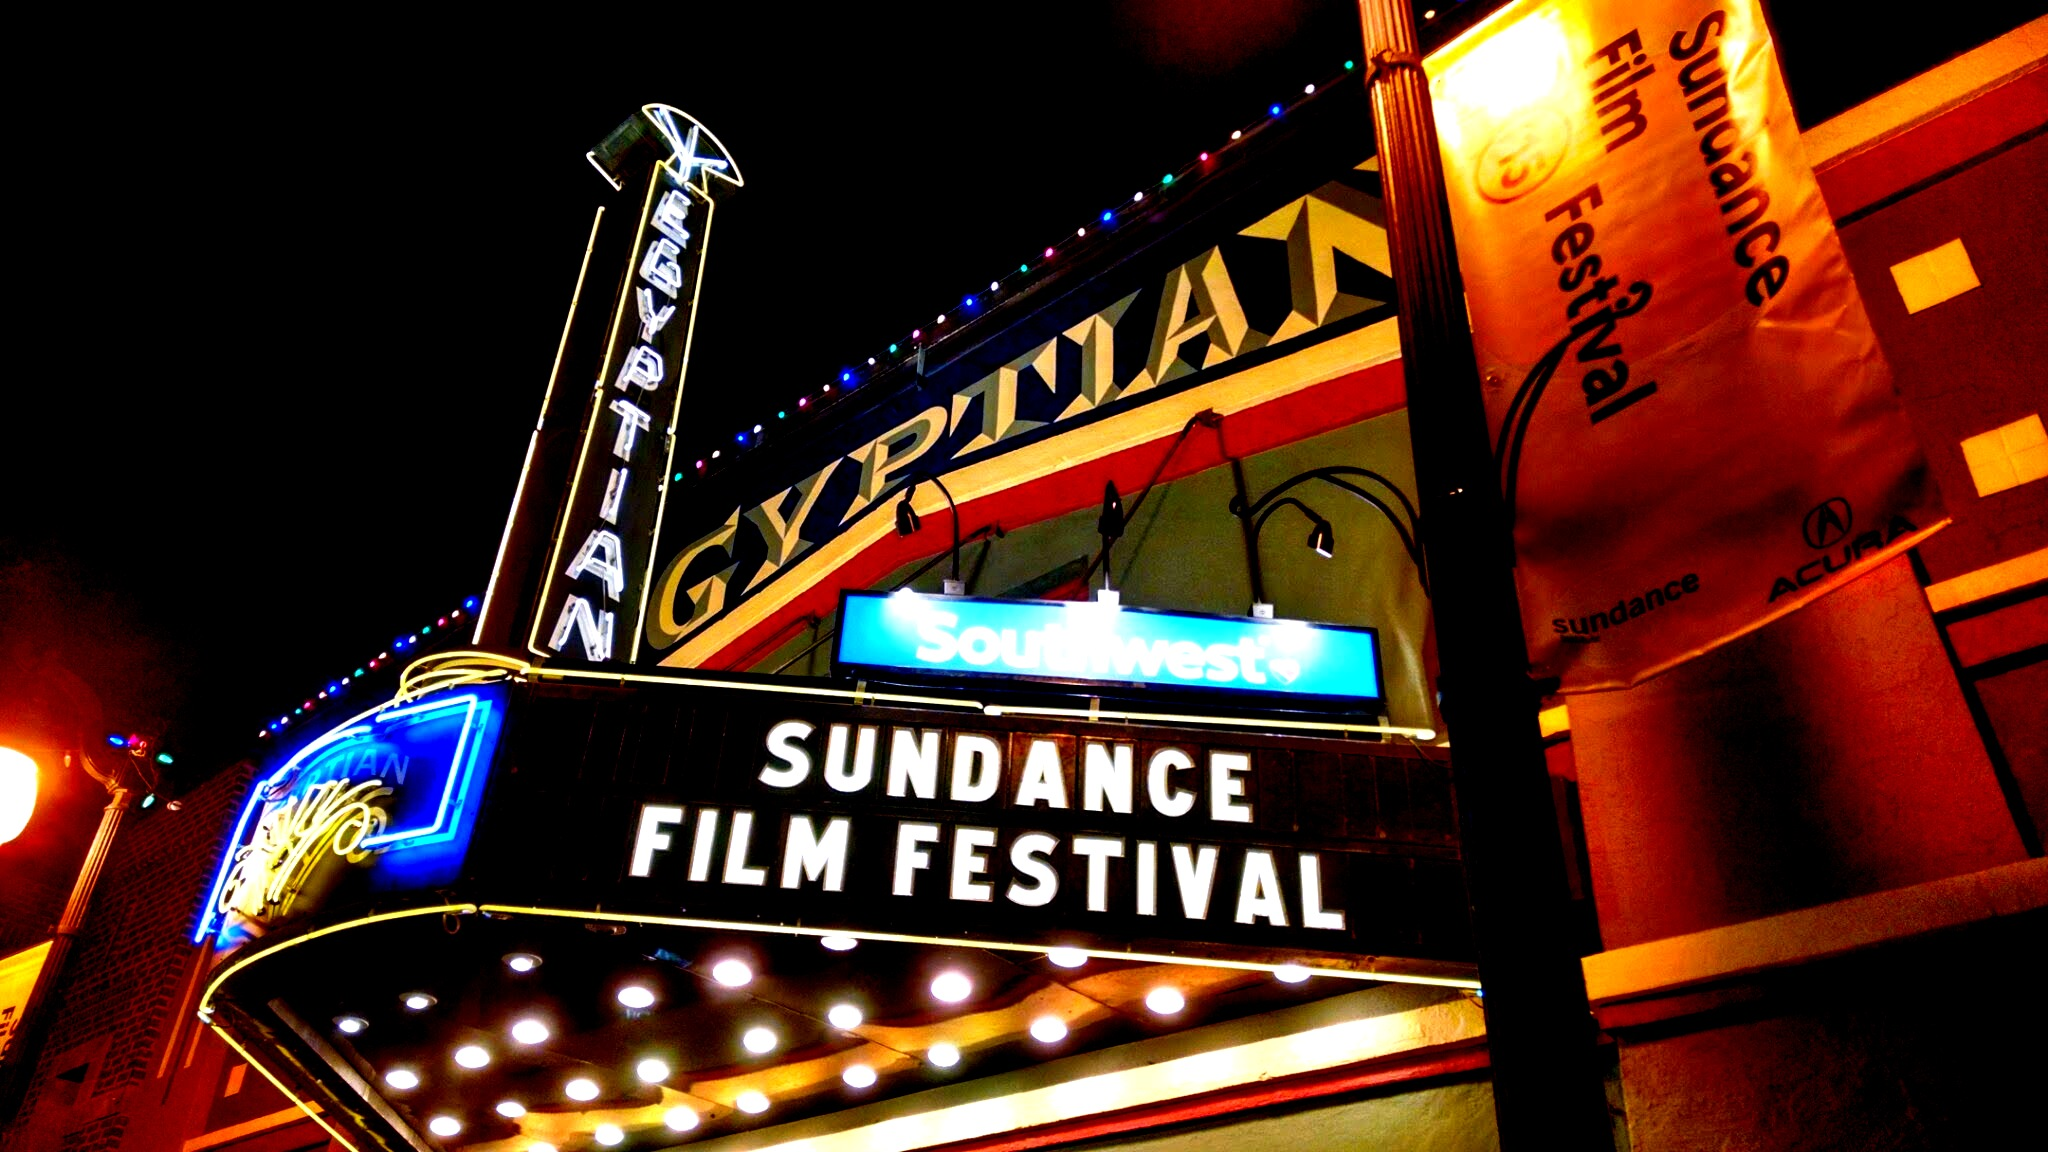 Win a trip to the Sundance Film Festival (includes airfare, hotel, and more) 1/20/19 Giveaway Image